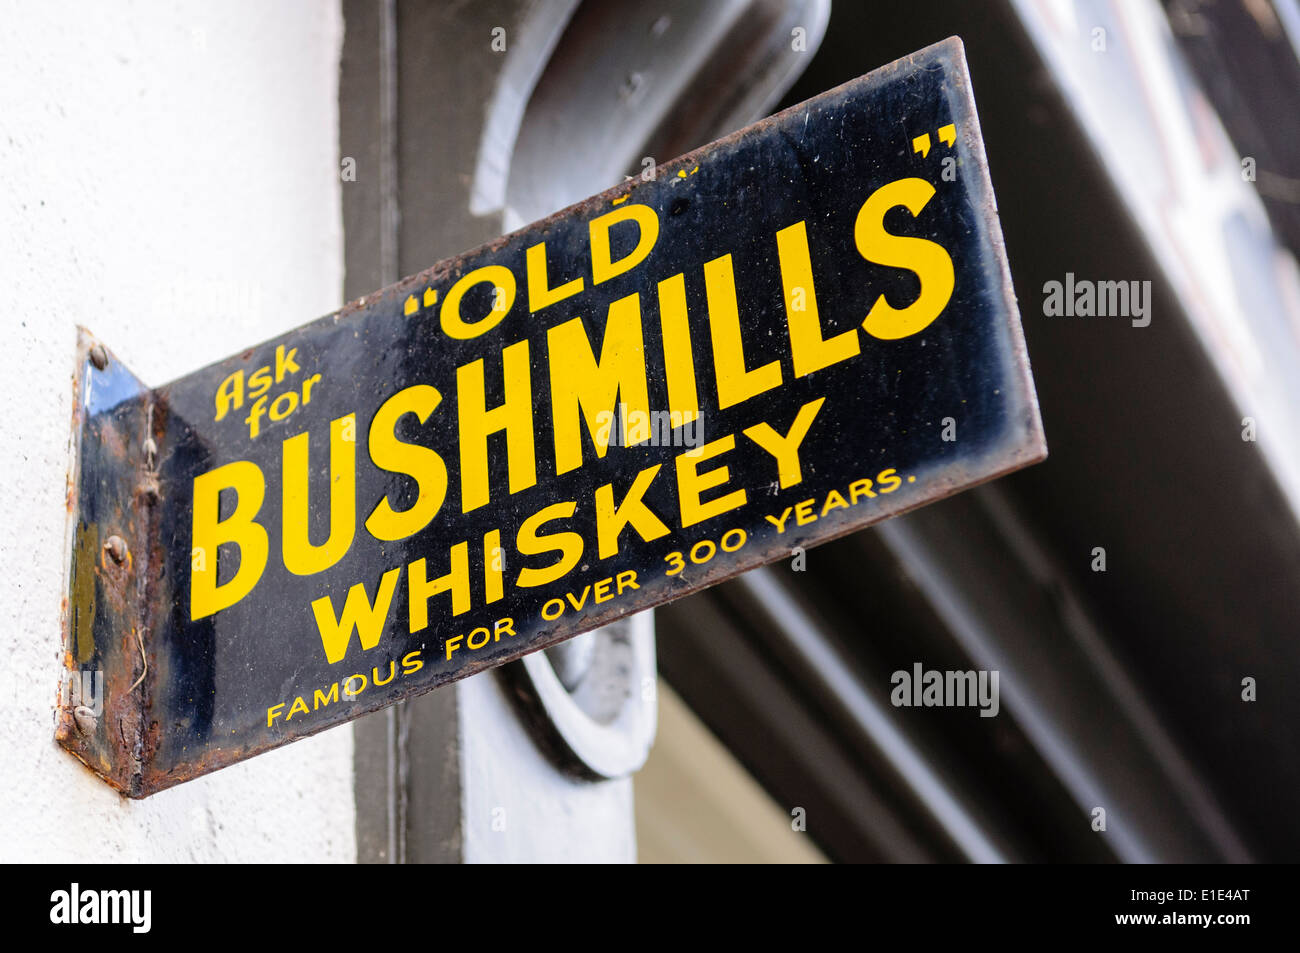 Sign for Old Bushmills Whiskey outside a pub - Stock Image